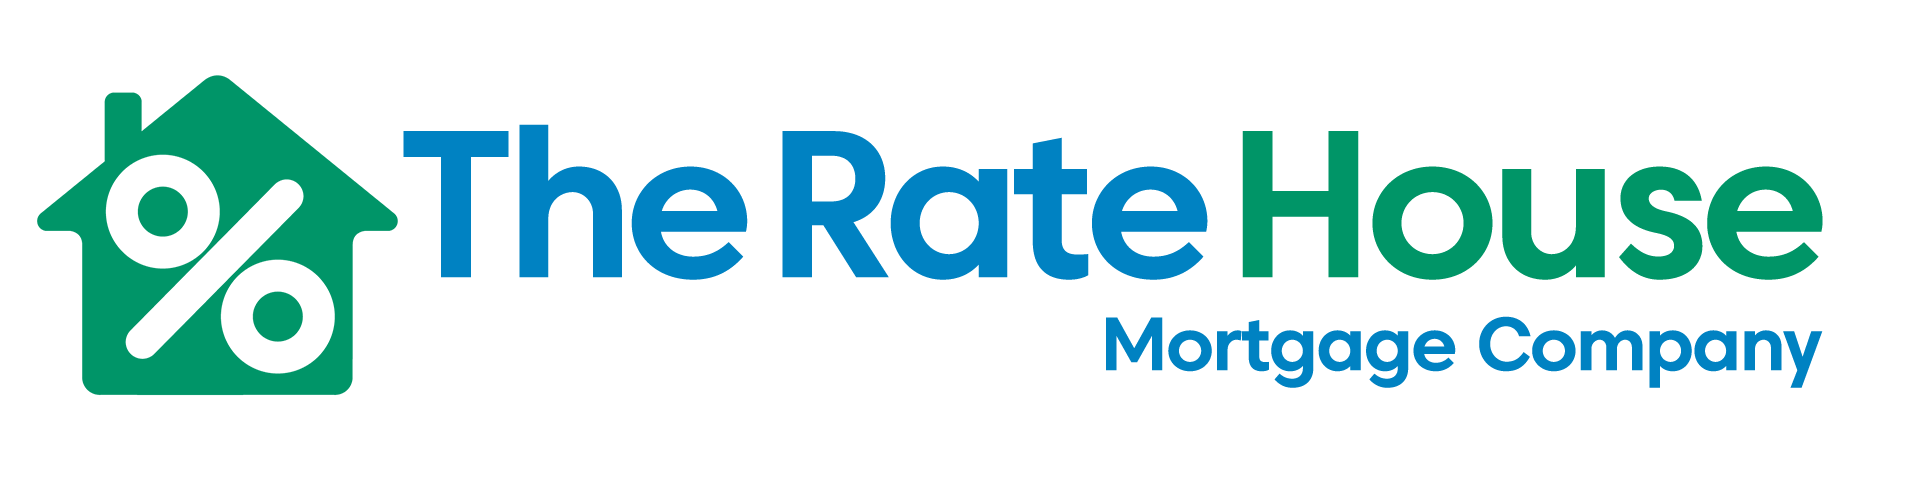 The Rate House